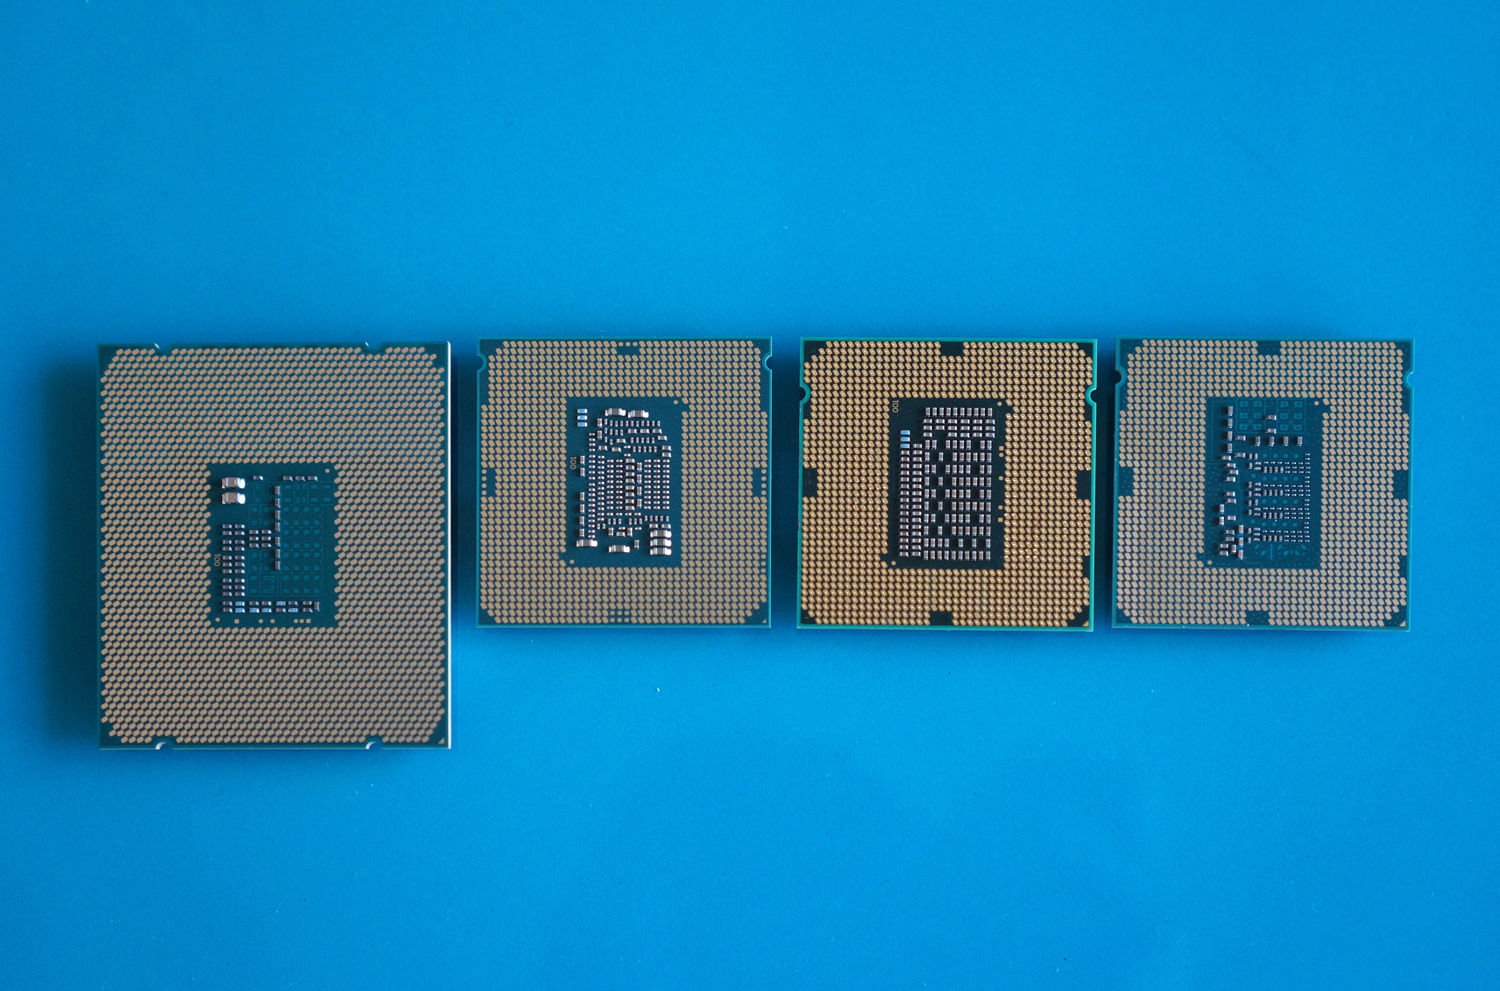 Mesmerizing A Core Intel Core Processor Review Review I7 4790k Vs I7 7700k Worth It I7 4790k Vs I7 7700k Game Debate From Left To An Core New Core Ancient Core dpreview I7 4790k Vs I7 7700k